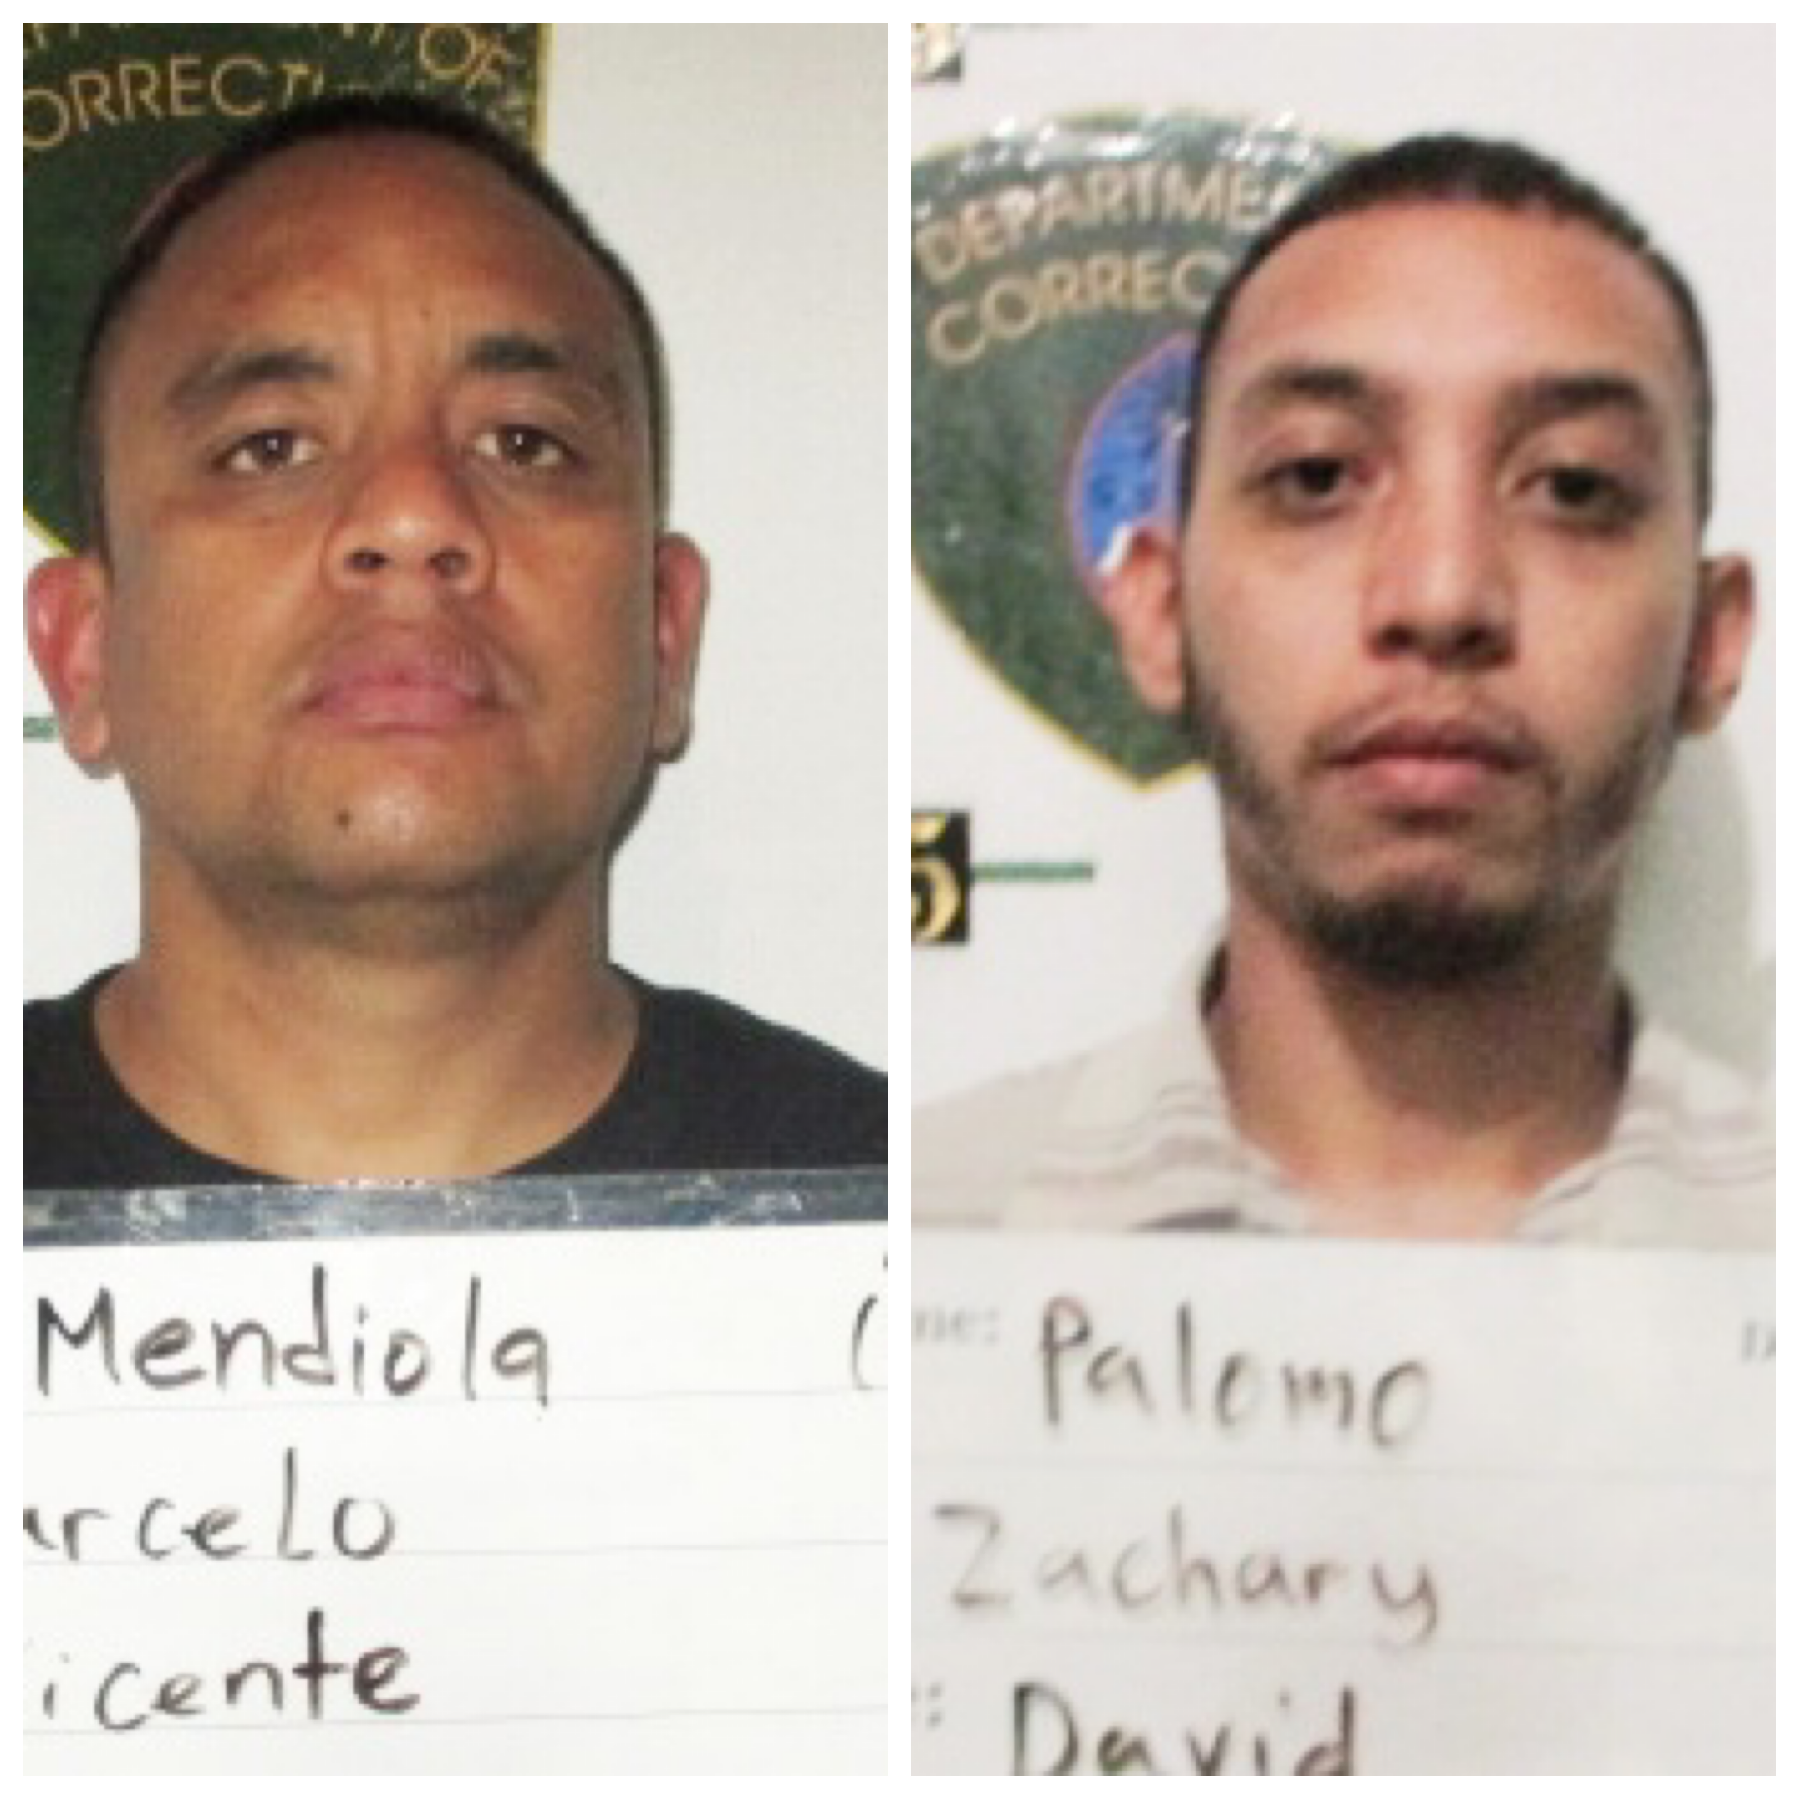 Brothers Zachary Palomo, Marcelo Mendiola allegedly forged checks for cash